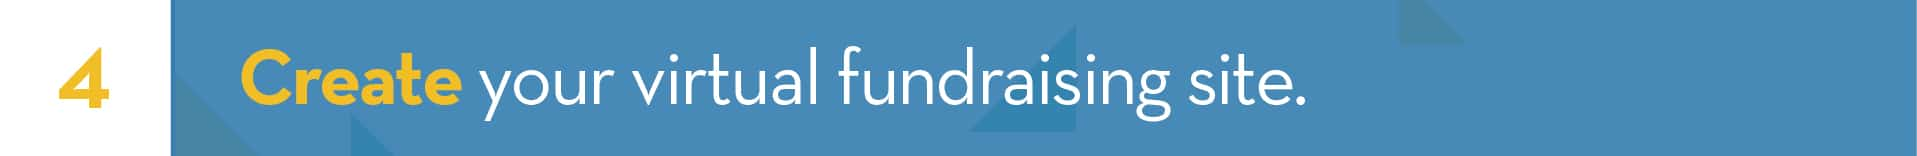 4. Create your virtual fundraising site